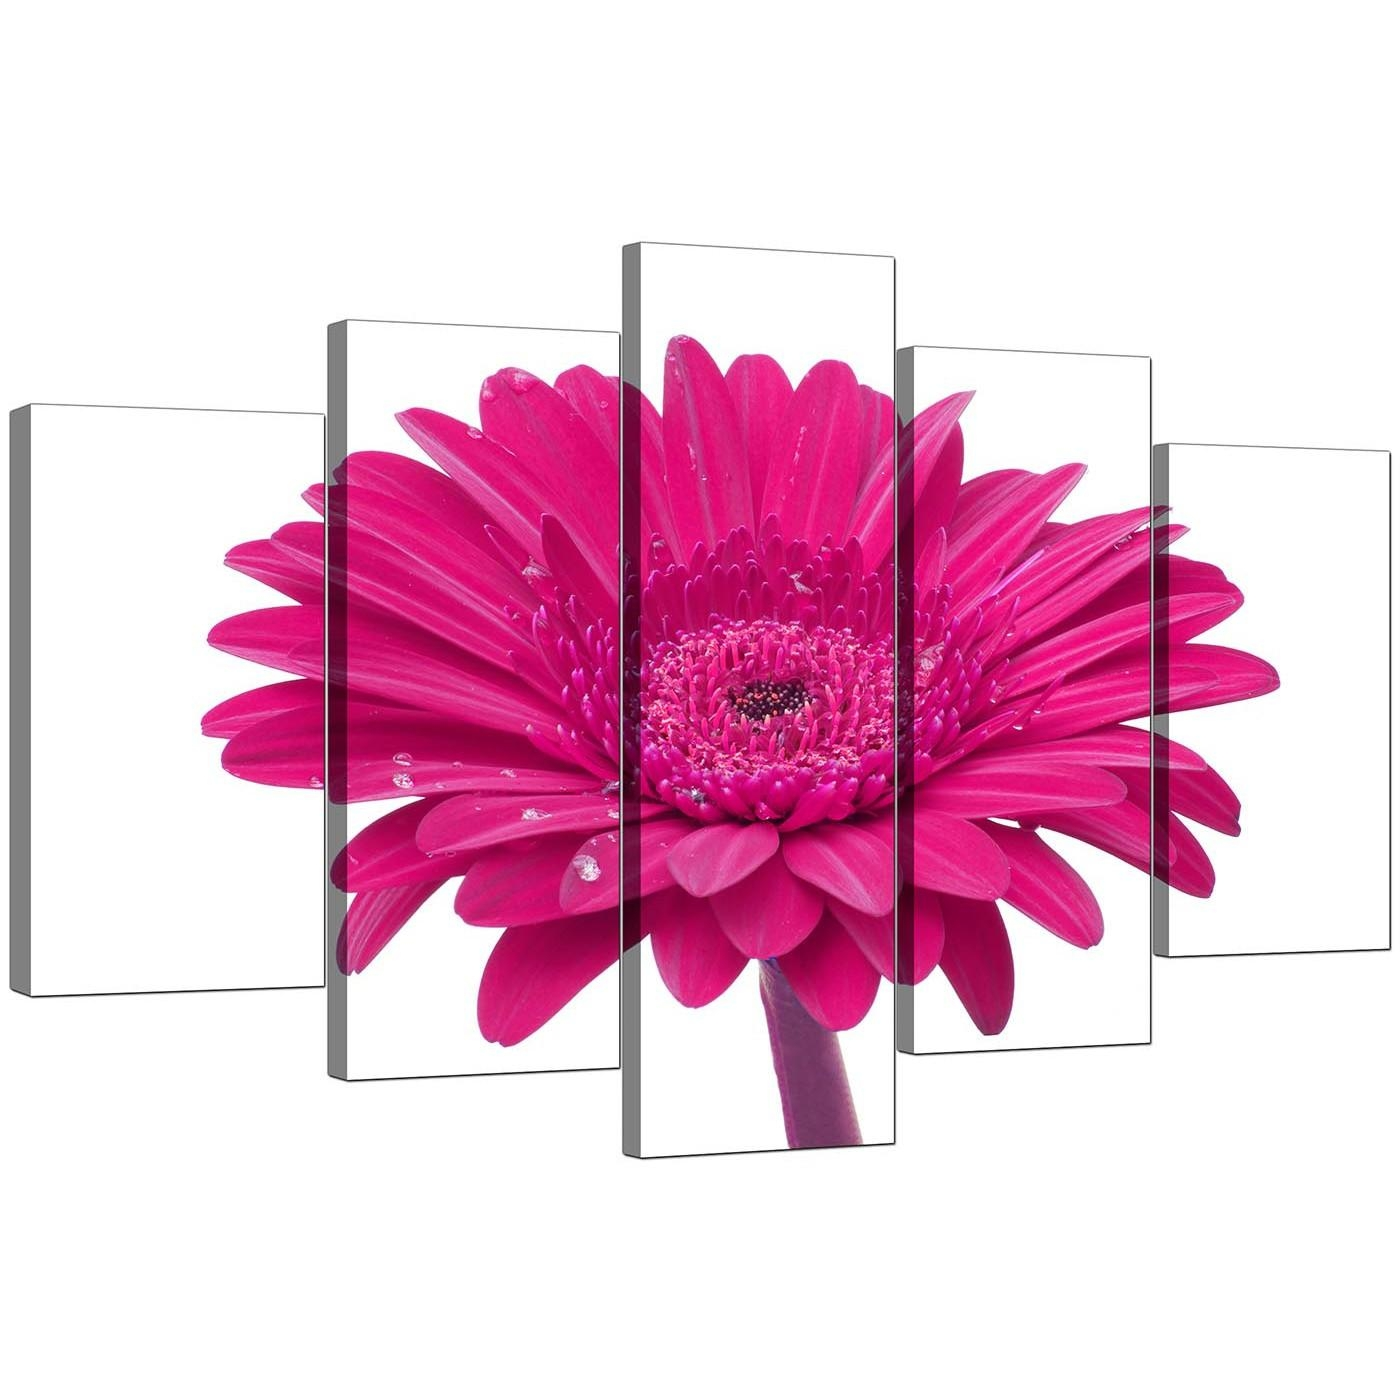 Extra Large Flower Canvas Wall Art 5 Piece In Pink Throughout Pink Flower Wall Art (Image 7 of 20)